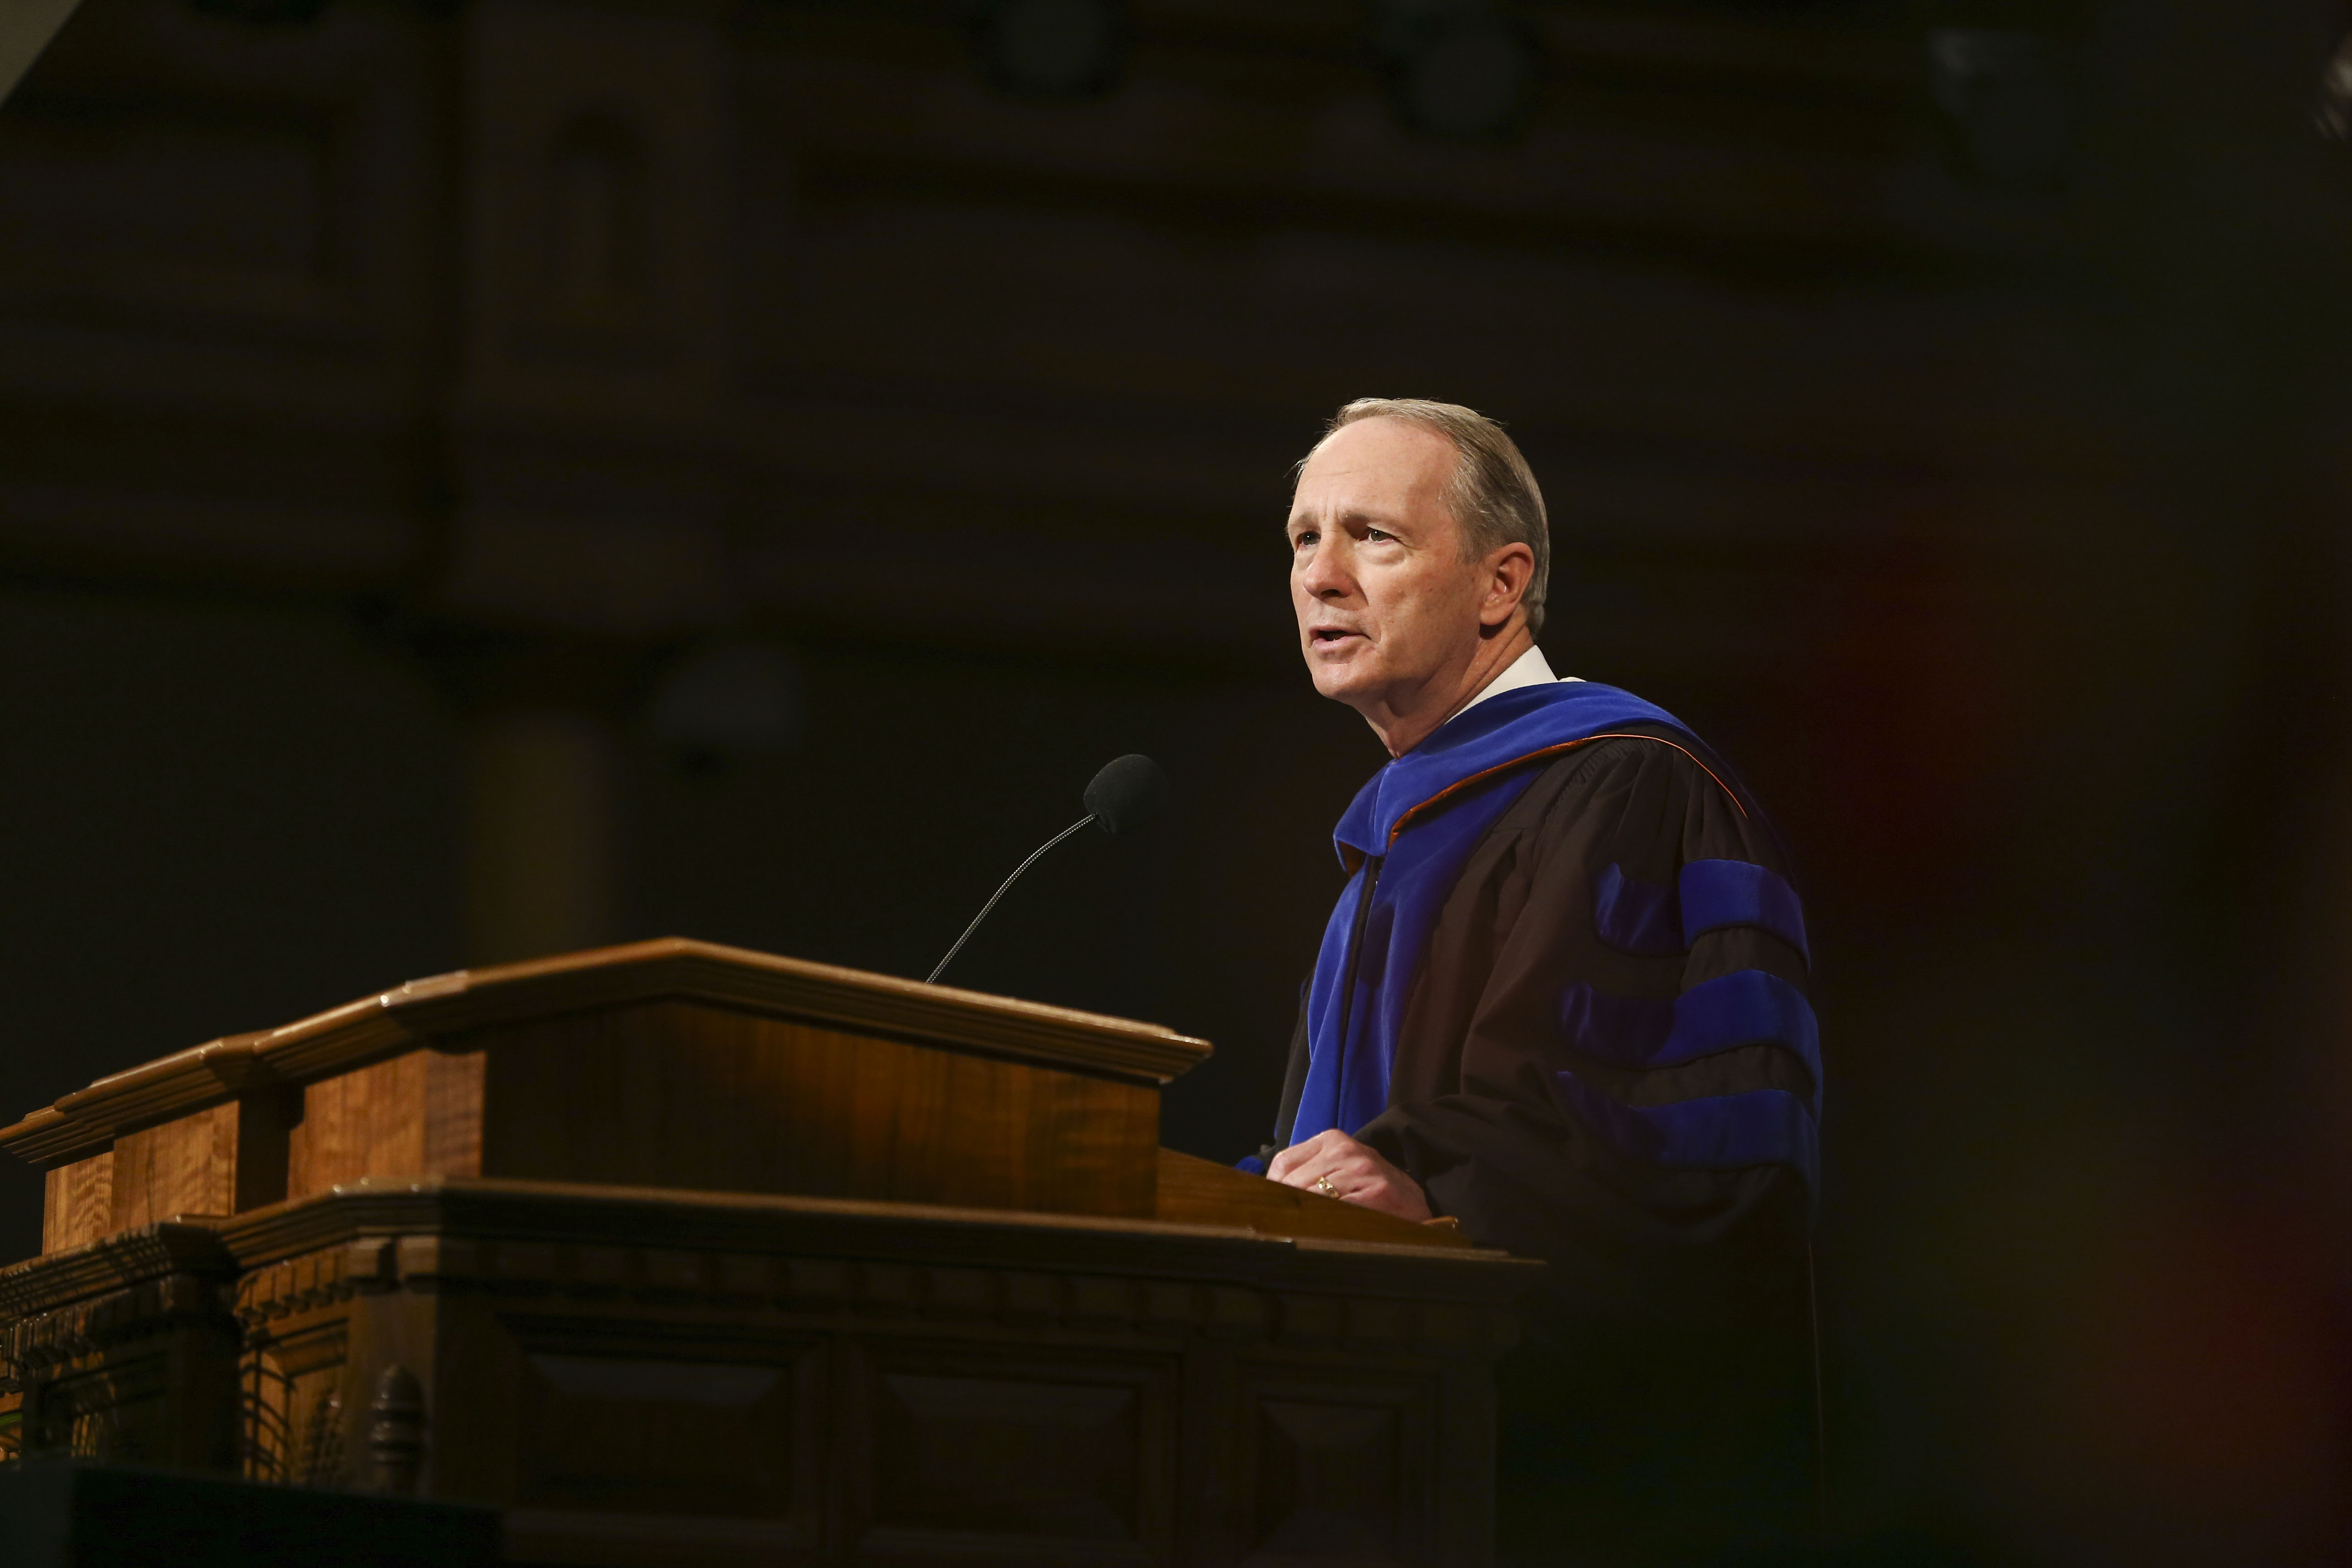 President Bruce C. Kusch speaks during the commencement ceremony for LDS Business College at the Tabernacle on Temple Square in Salt Lake City on Friday, April 12, 2019.